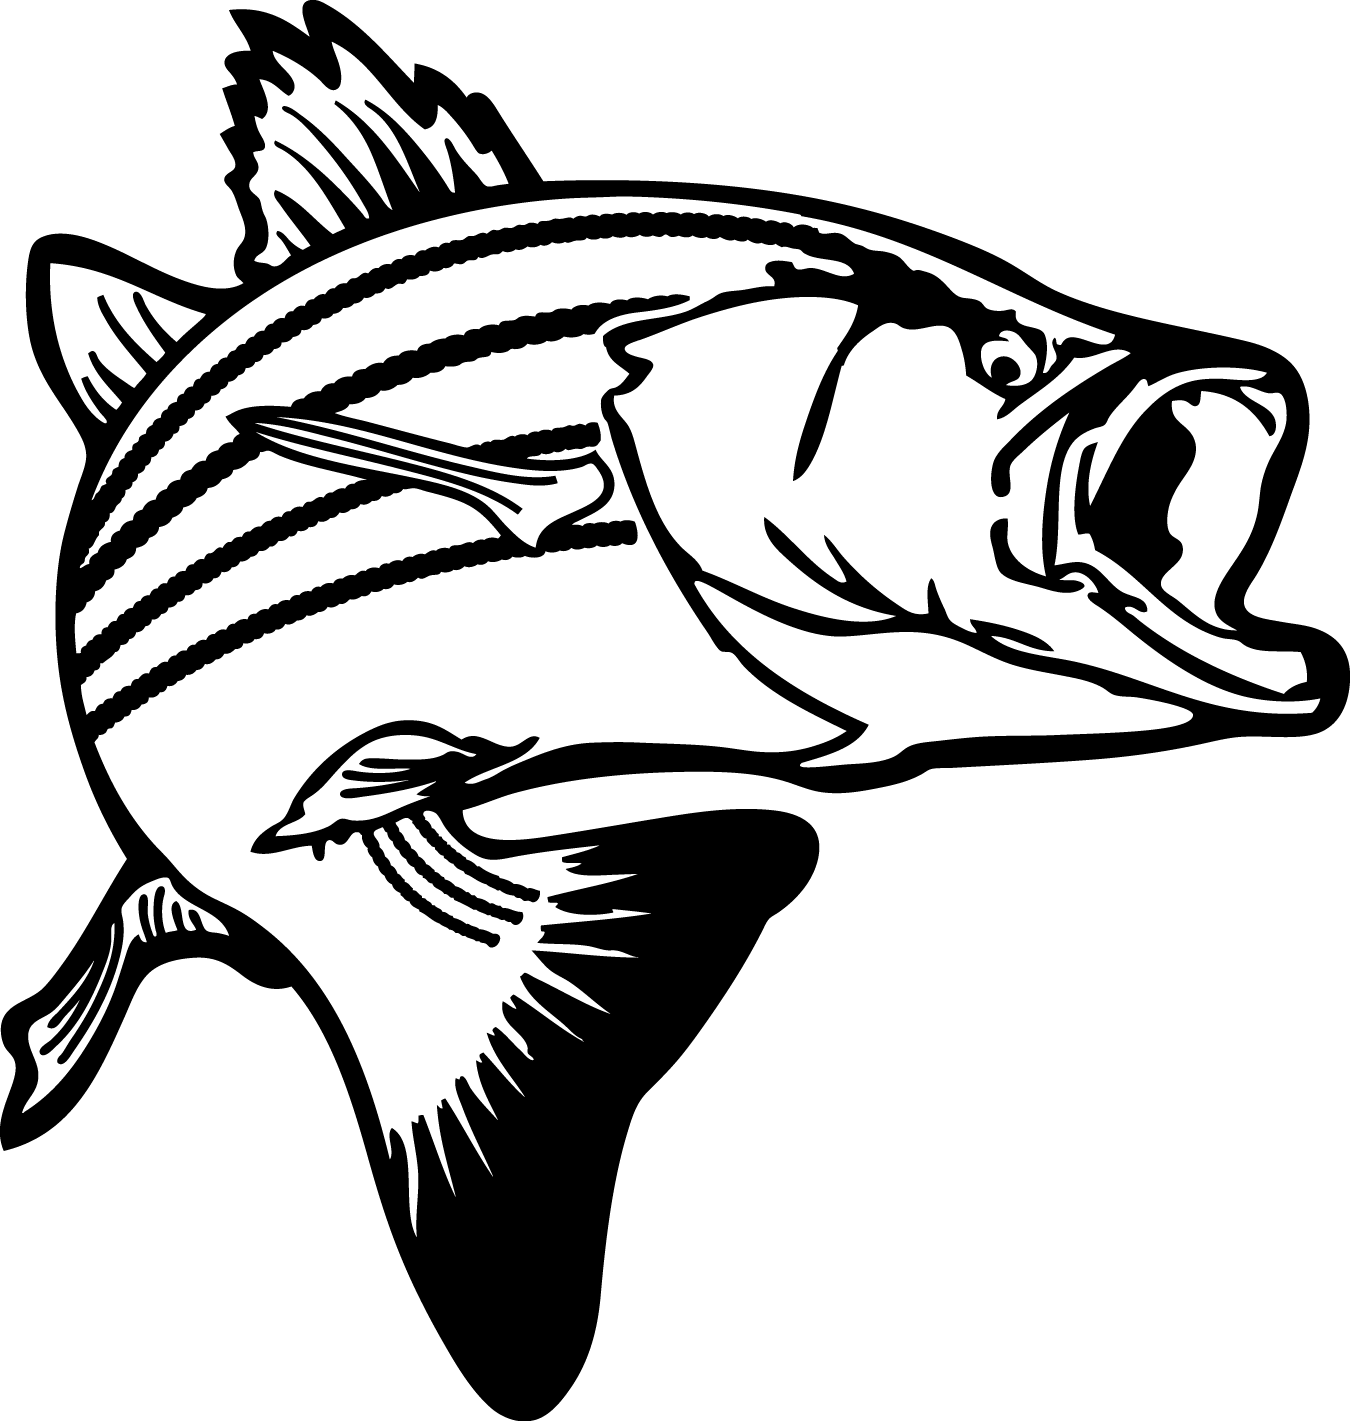 Dolphin fish jumping clipart png black and white library Jumping Bass Fish Clip Art | Clipart Panda - Free Clipart Images ... png black and white library